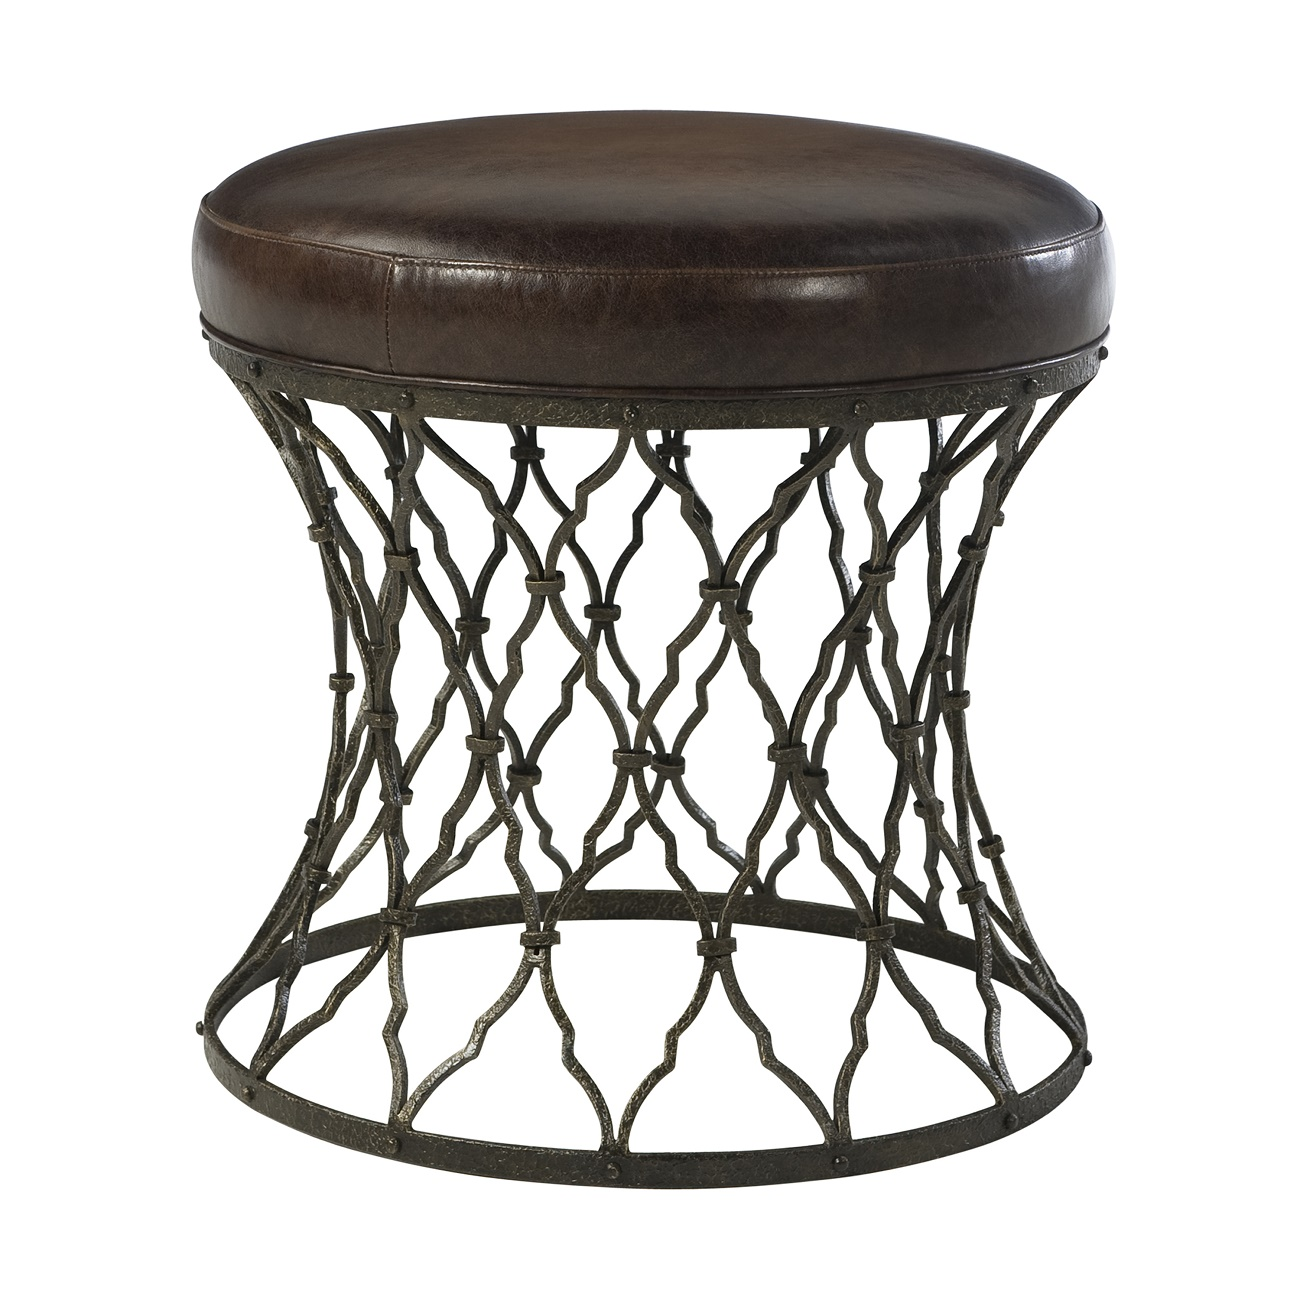 Antoni Counter Stool, Theodore Alexander Counter Stool